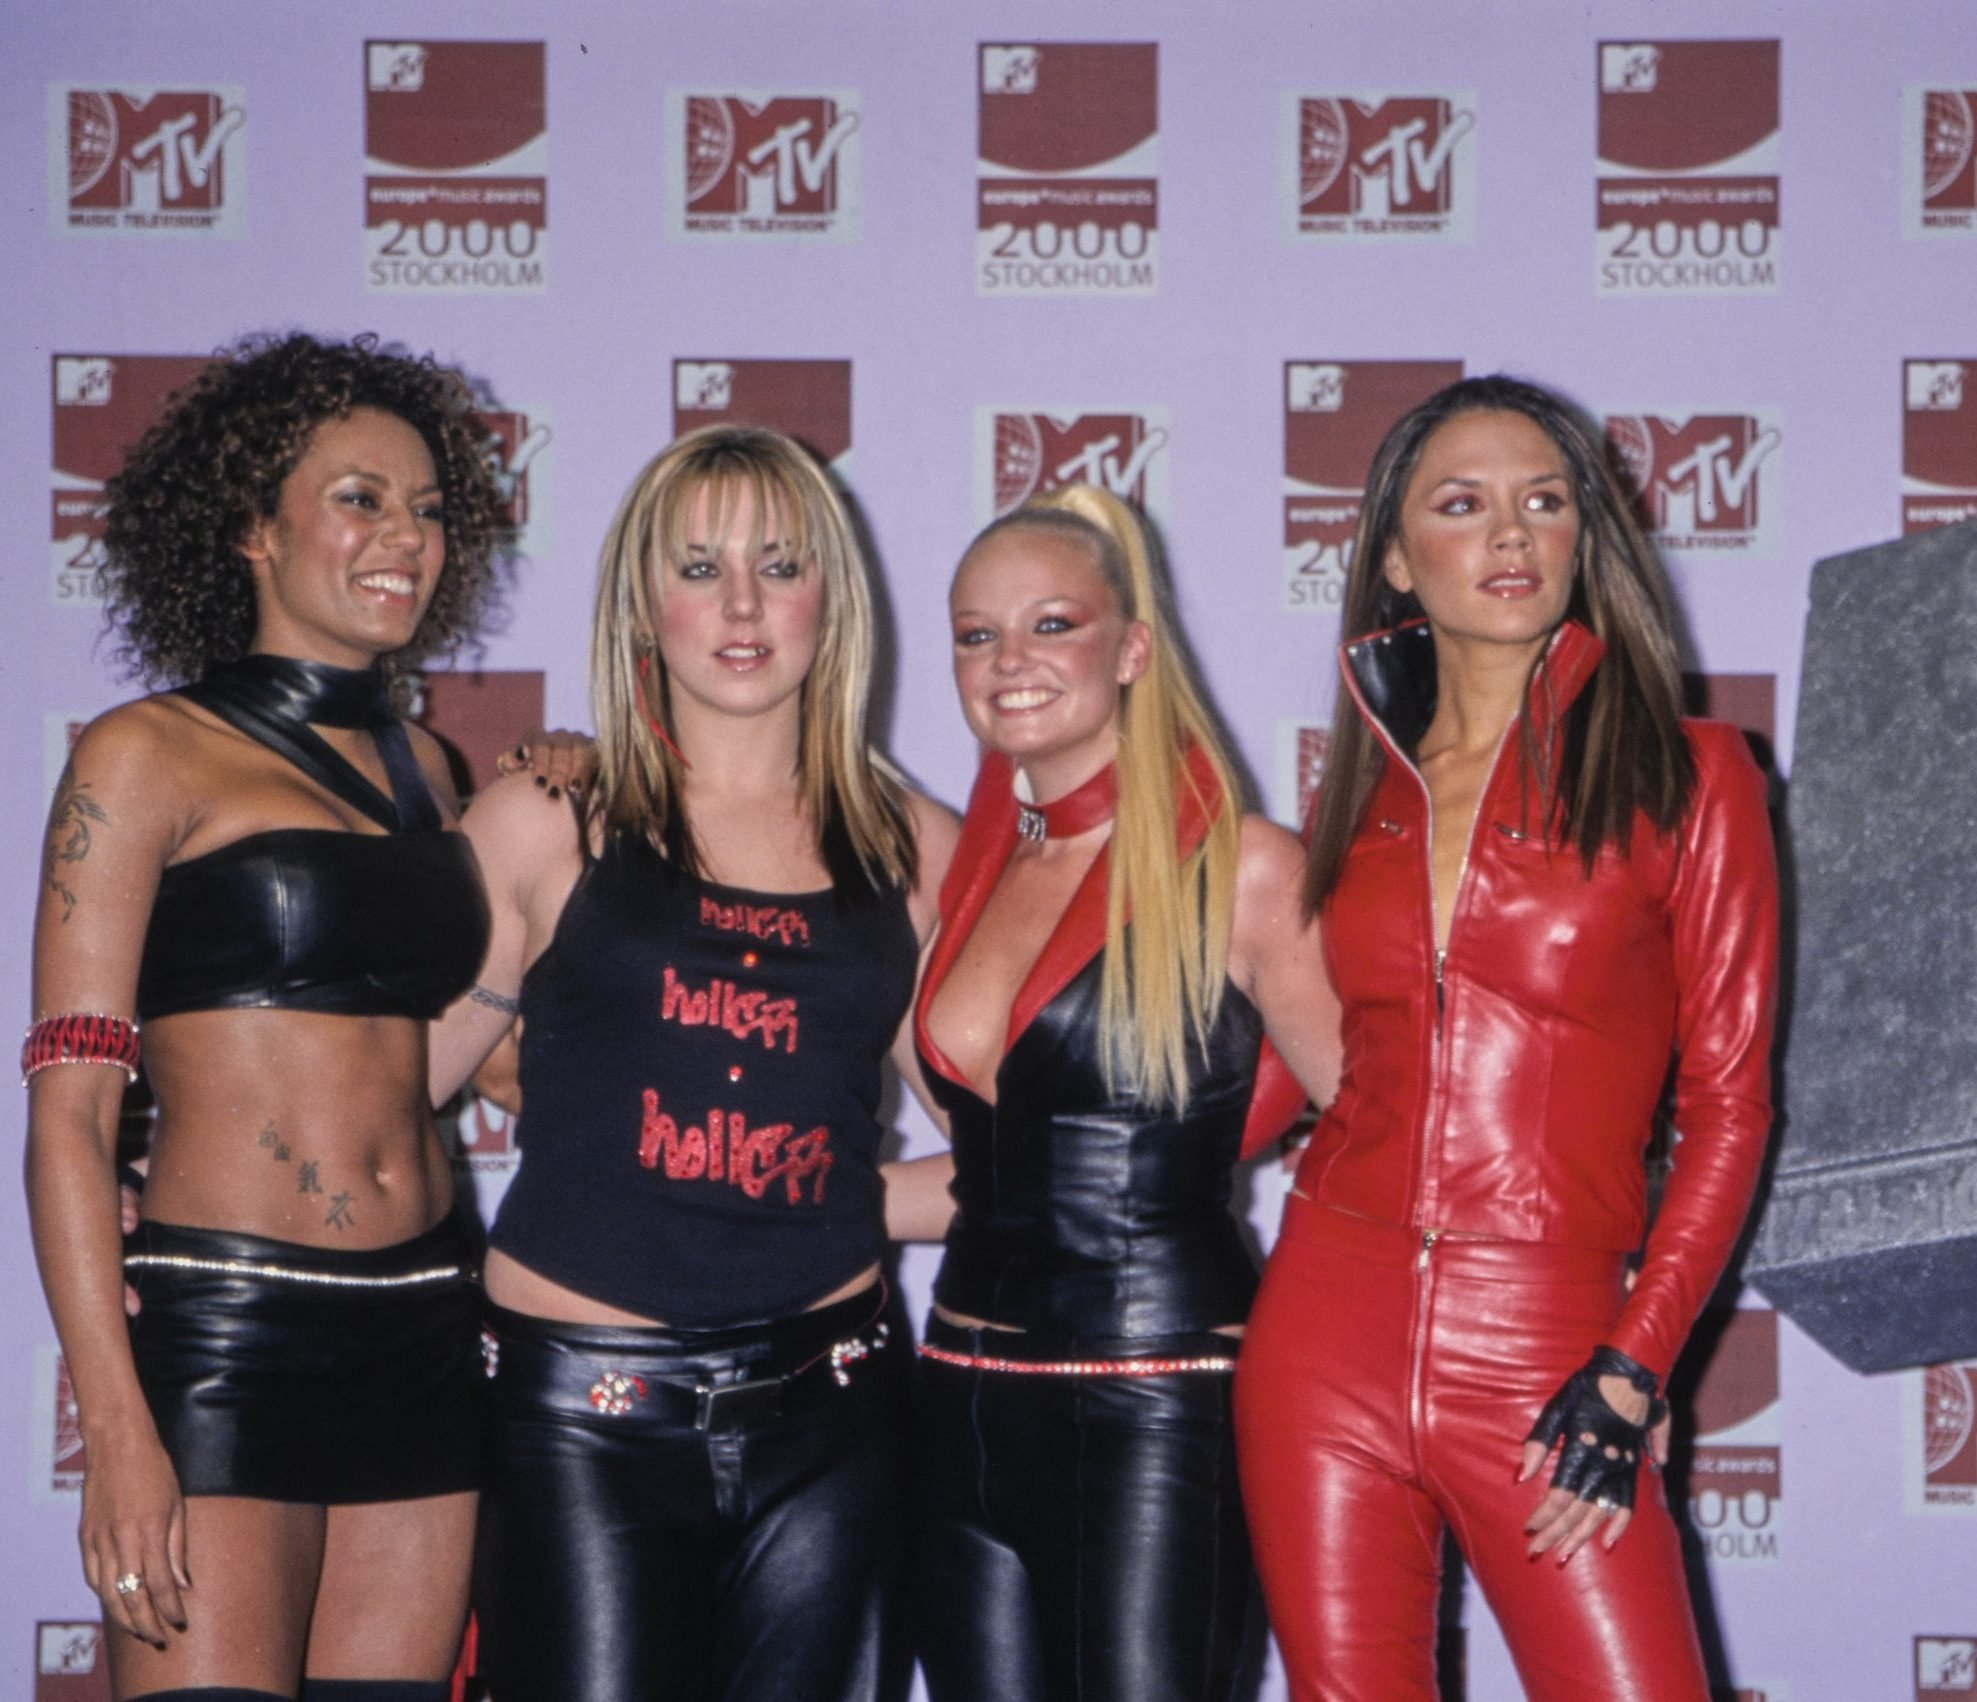 gettyimages 1281839710 scaled e1624023770957 Zig-A-Zig-Ah! It's 25 Fascinating Facts About The Spice Girls!